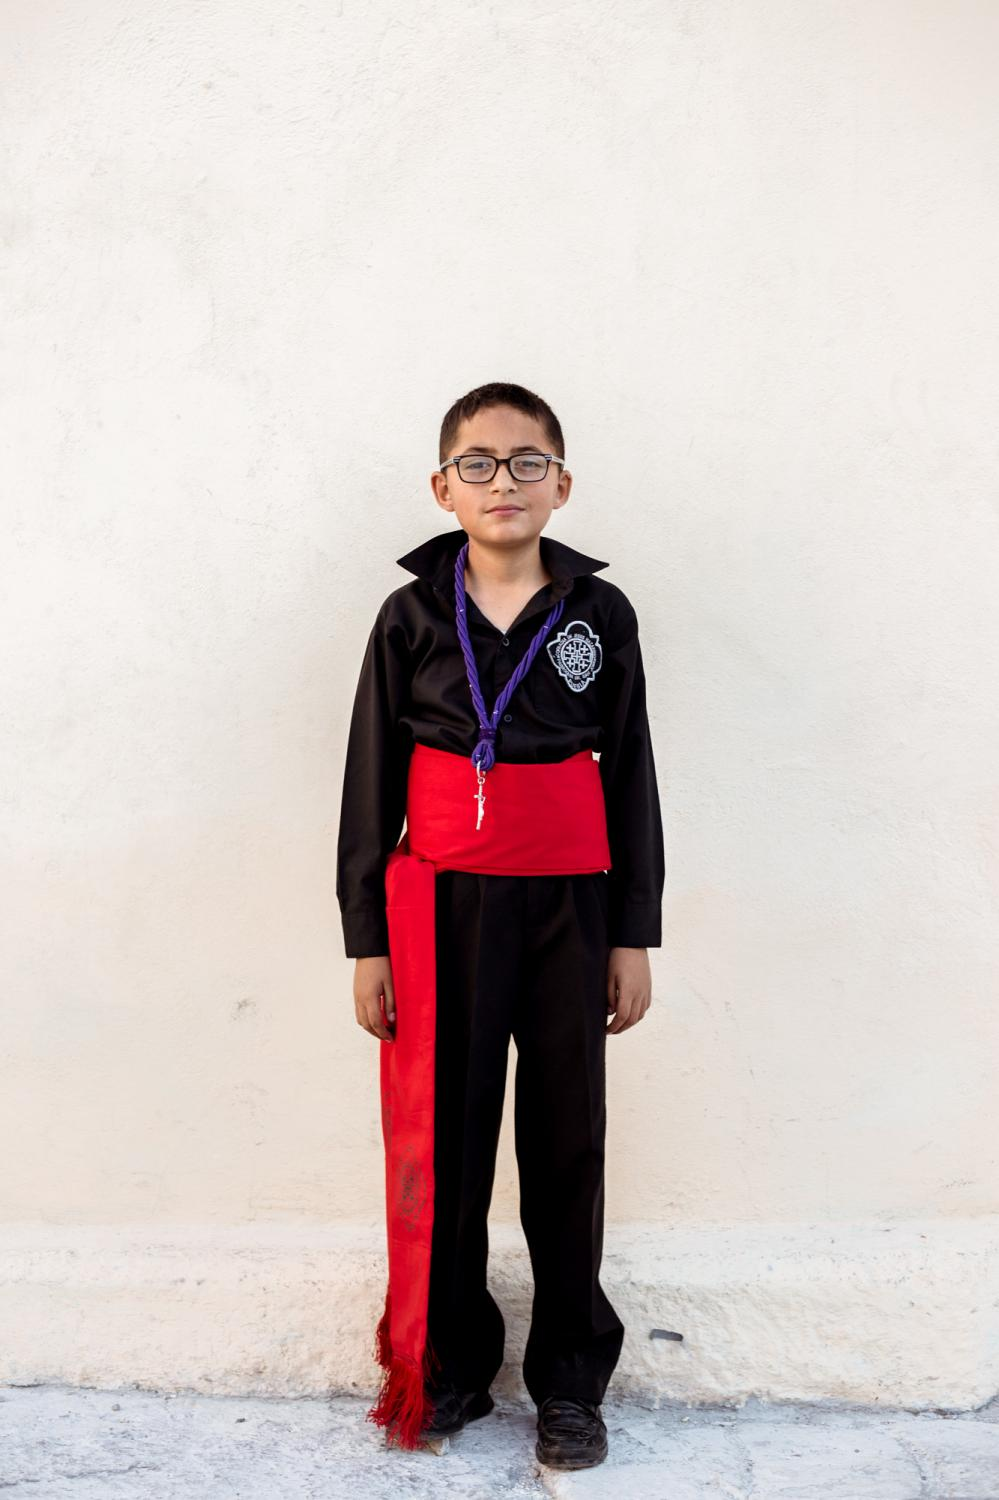 Rodrigo, became a member of the Confraternity because his family comes here. Most kids are a little shy but he came very confidently and asked to pose for a photo.